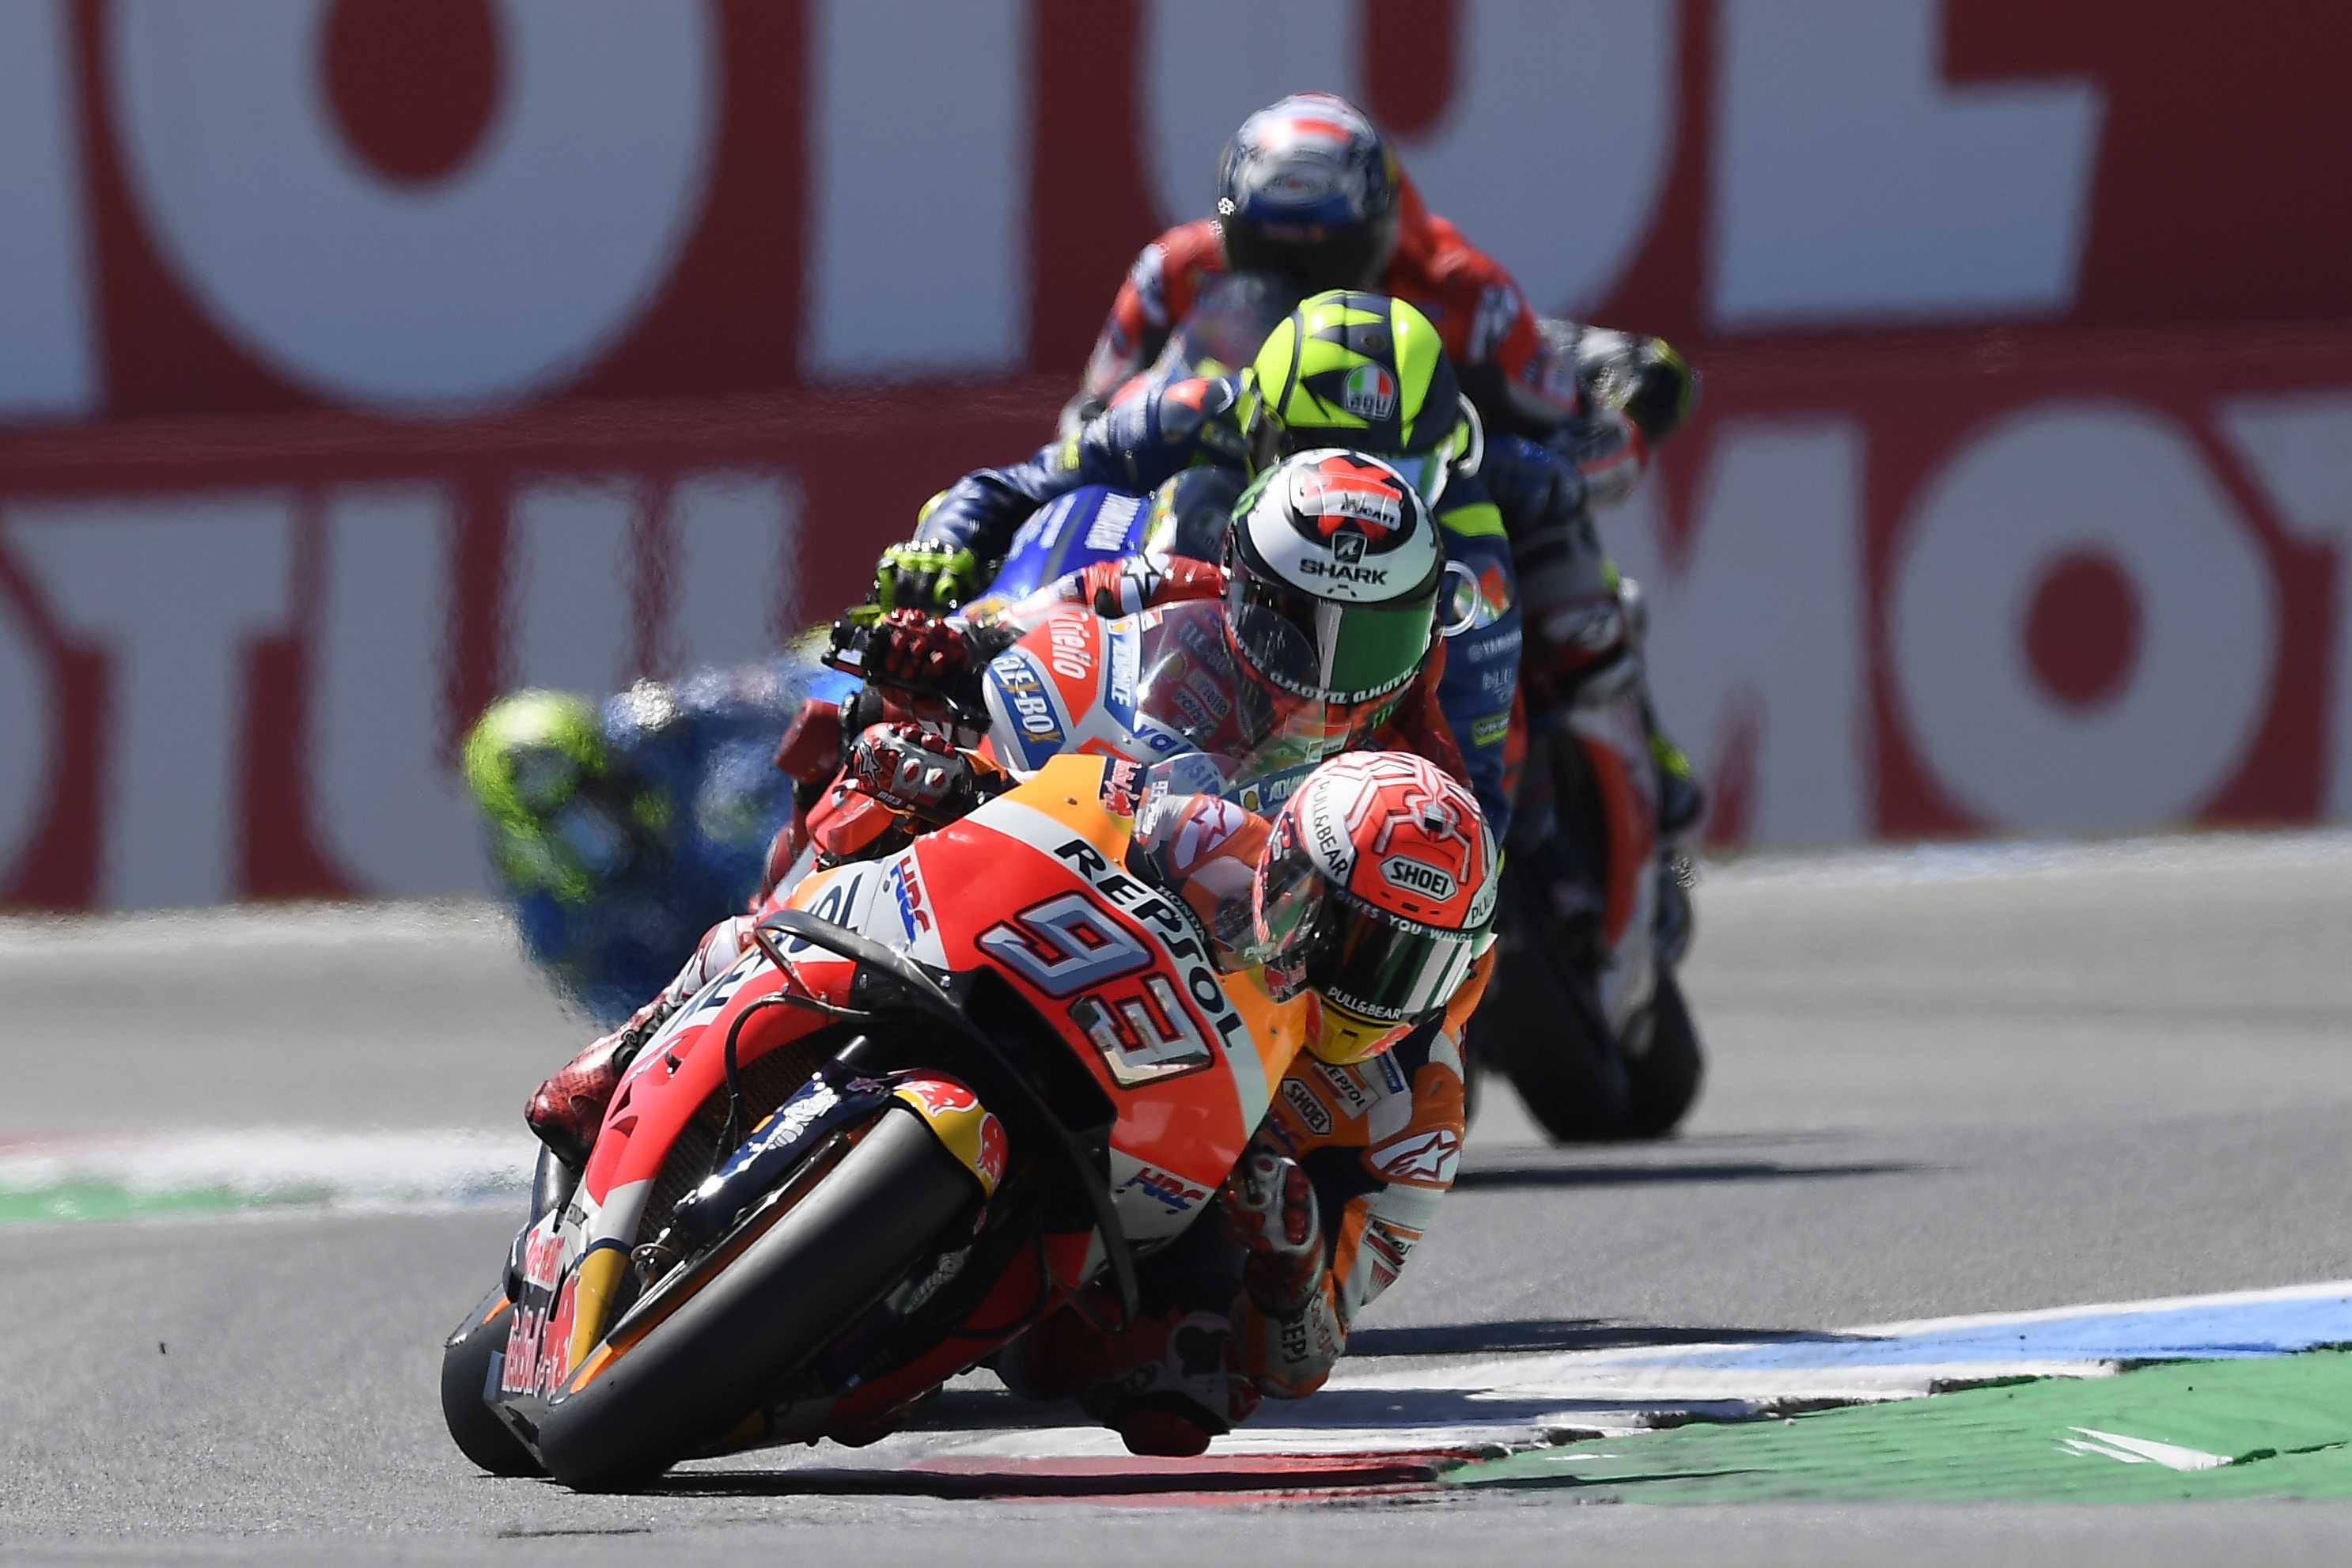 MotoGP Opinion: Making The Case For Marc Marquez Being The GOAT (Greatest  Of All Time) - Roadracing World Magazine | Motorcycle Riding, Racing & Tech  News